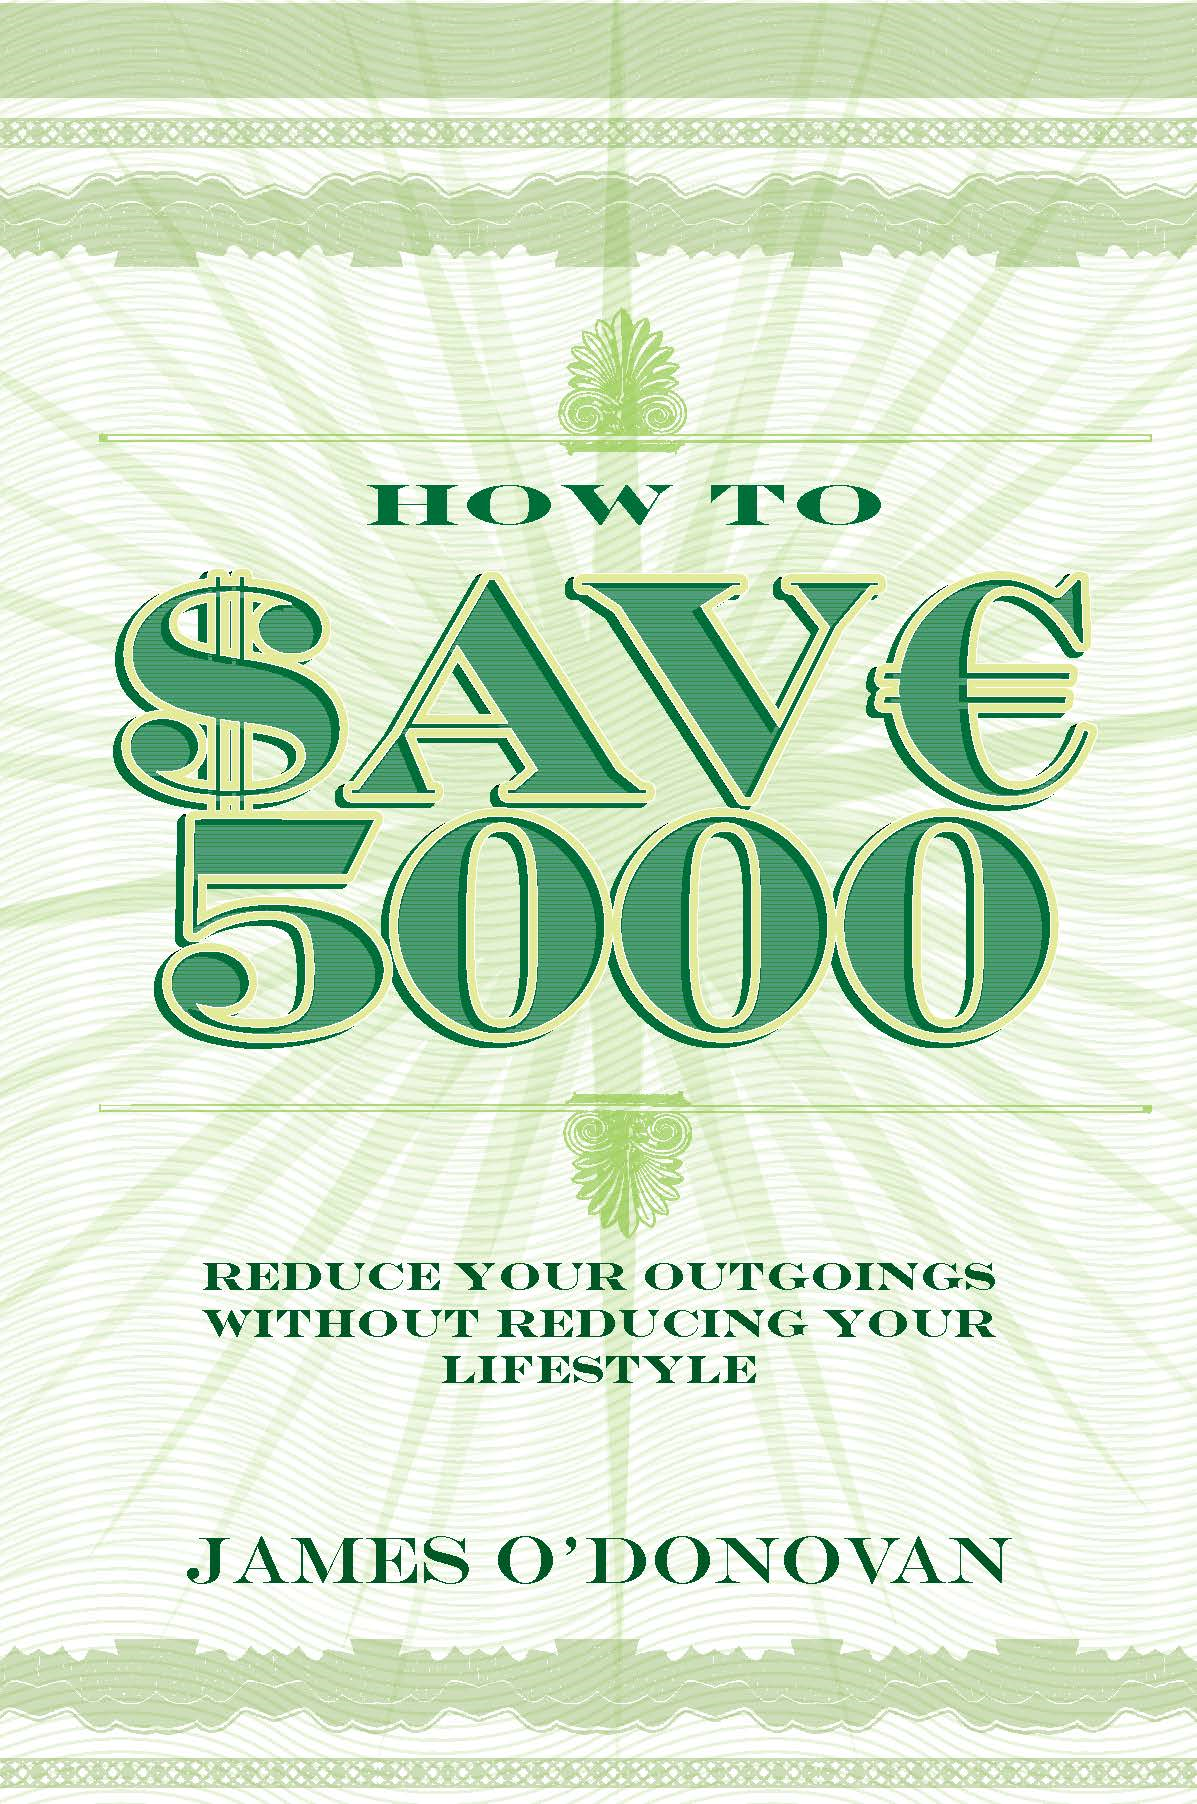 How To Save 5000: Reduce Your Outgoings without Reducing Your Lifestyle By: James O'Donovan